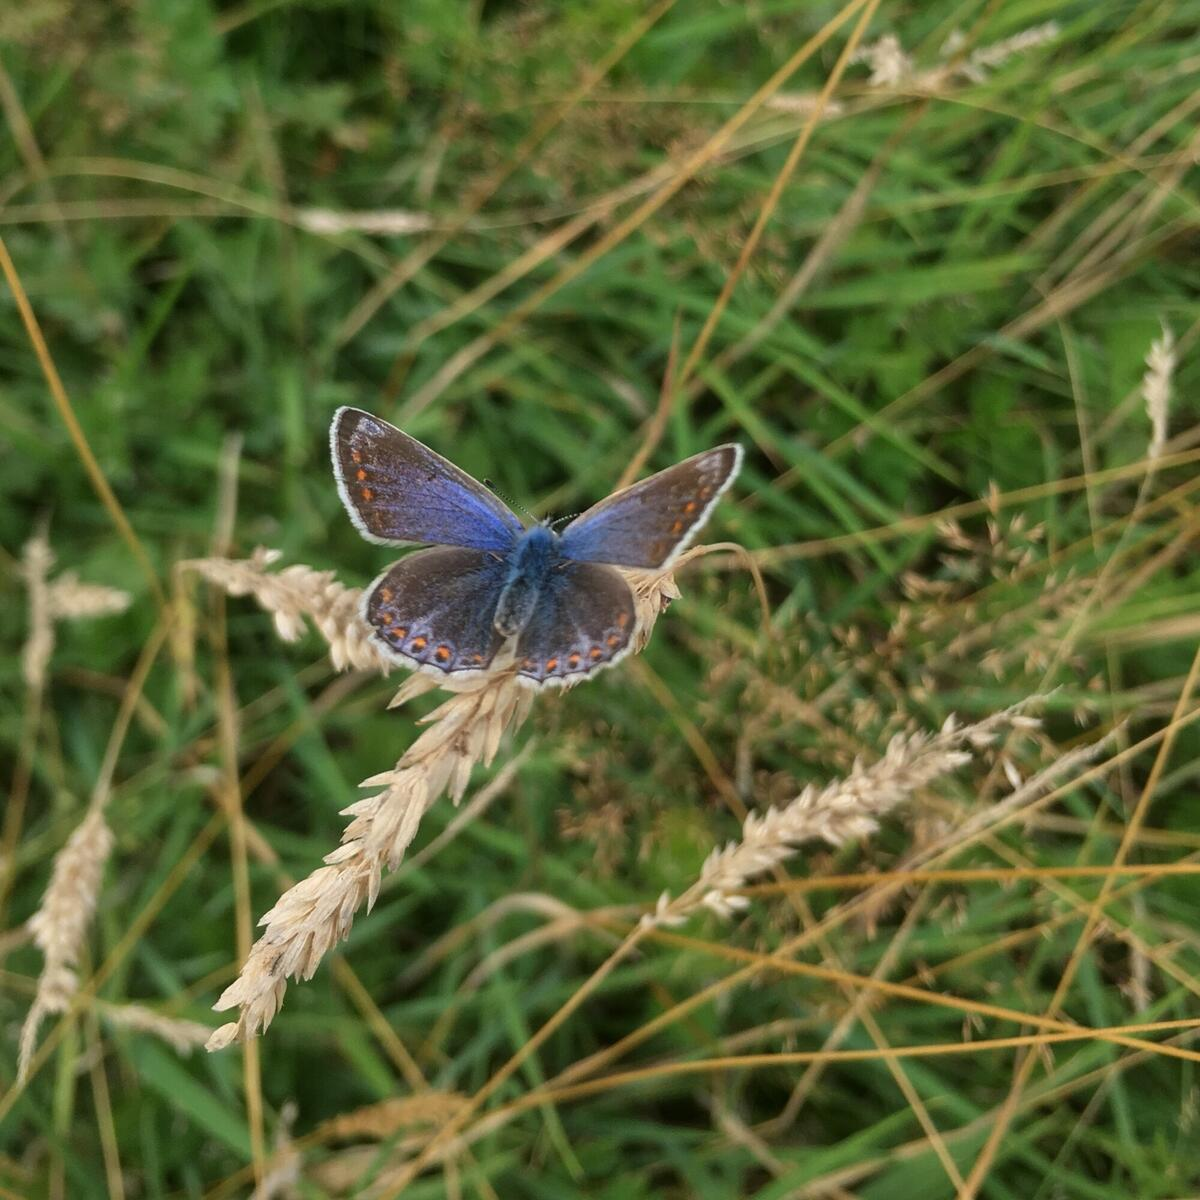 Commom blue butterfly in the Orchard